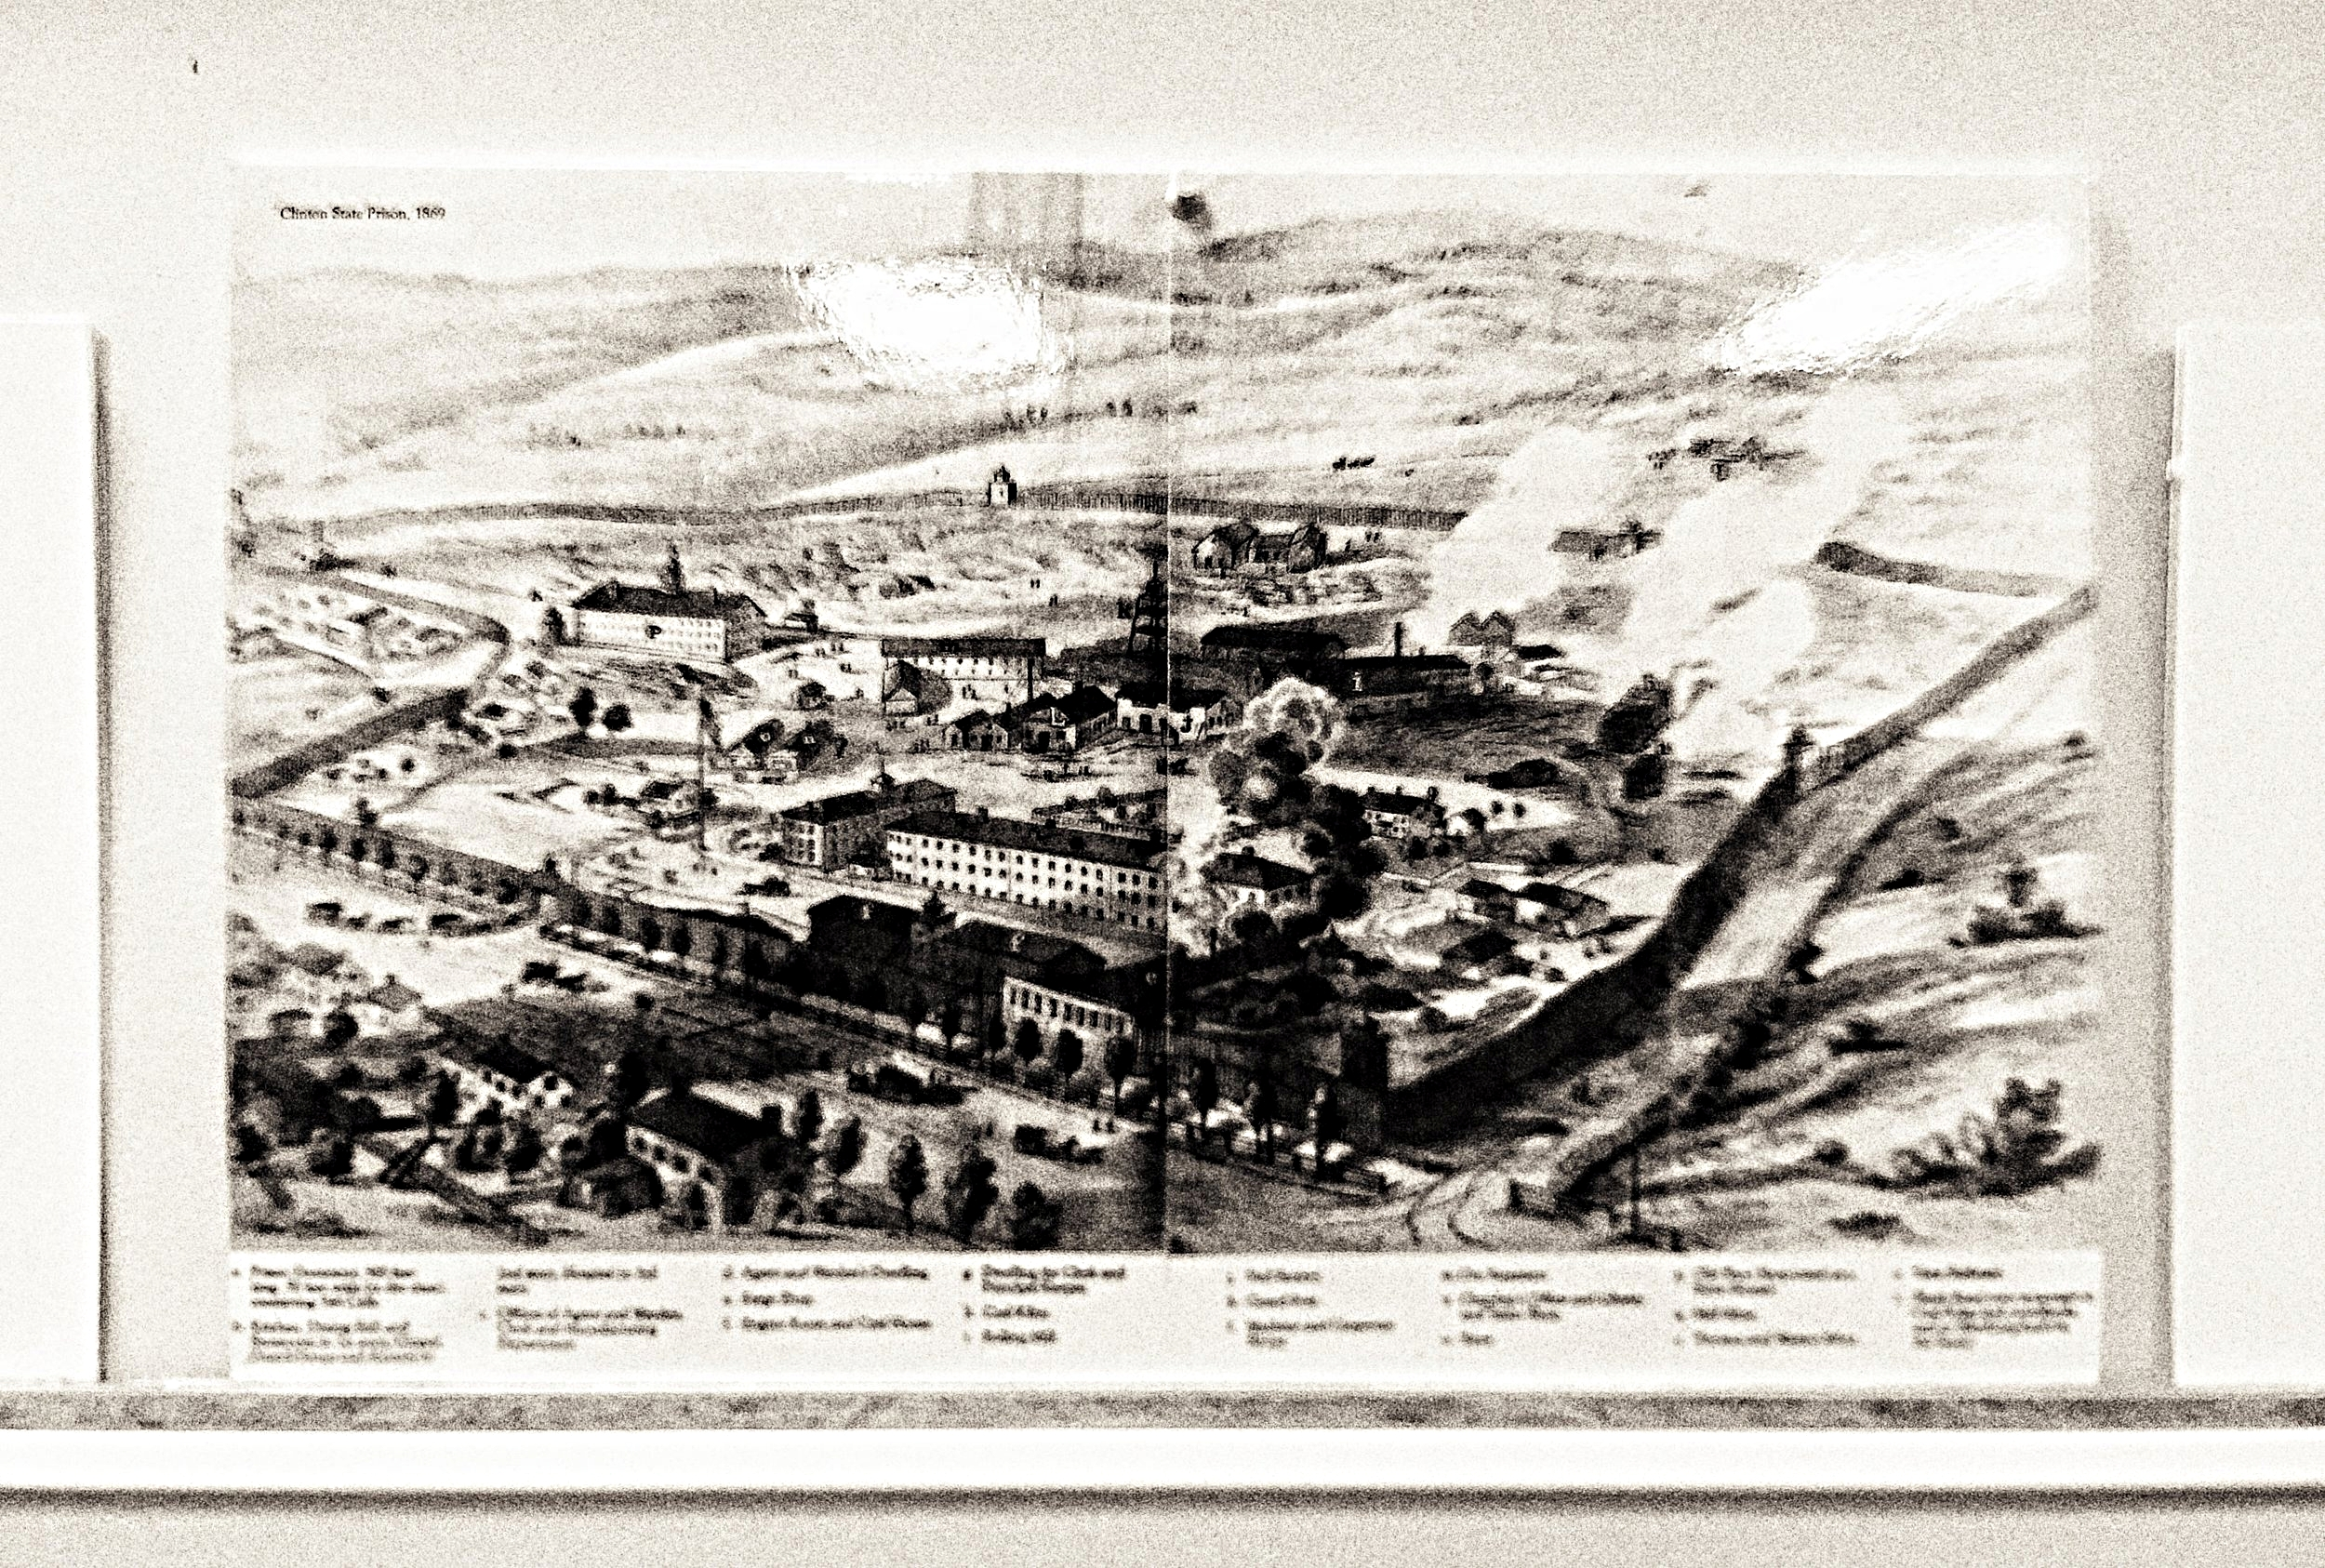 A 20th Century map of what was then called Clinton Prison.  (Museum at the Dannemora Free Library)